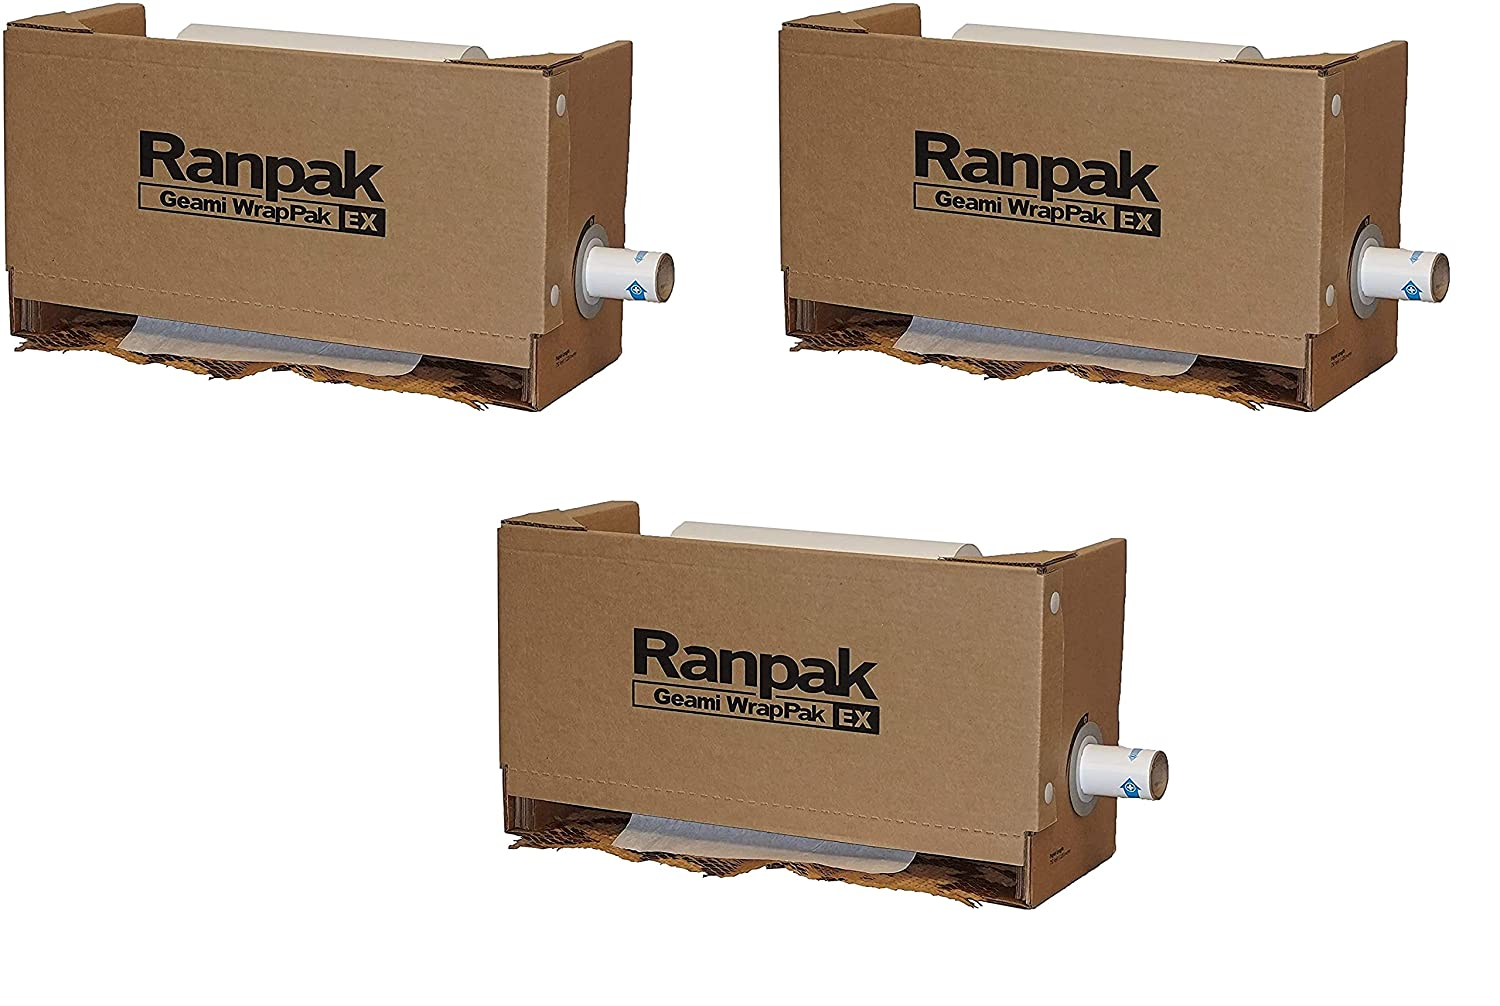 A surprise price is realized Ranpak Geami WrapPak EX 750' 40% OFF Cheap Sale Sustainable P 14